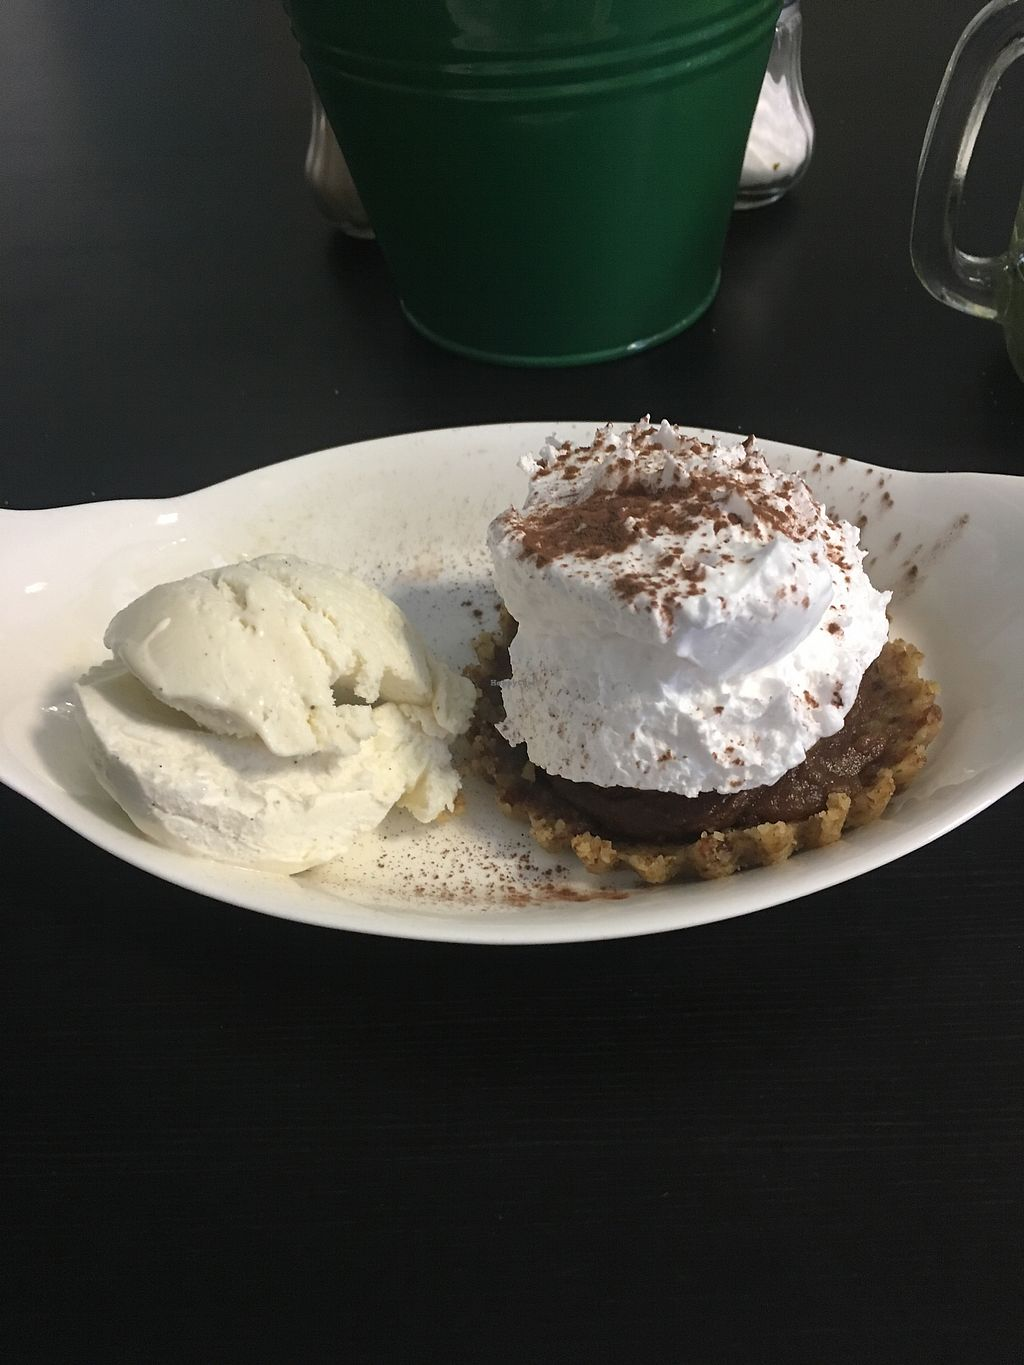 """Photo of The Green Room  by <a href=""""/members/profile/Nyle.95"""">Nyle.95</a> <br/>Banoffee Pie  <br/> February 14, 2018  - <a href='/contact/abuse/image/73773/359266'>Report</a>"""